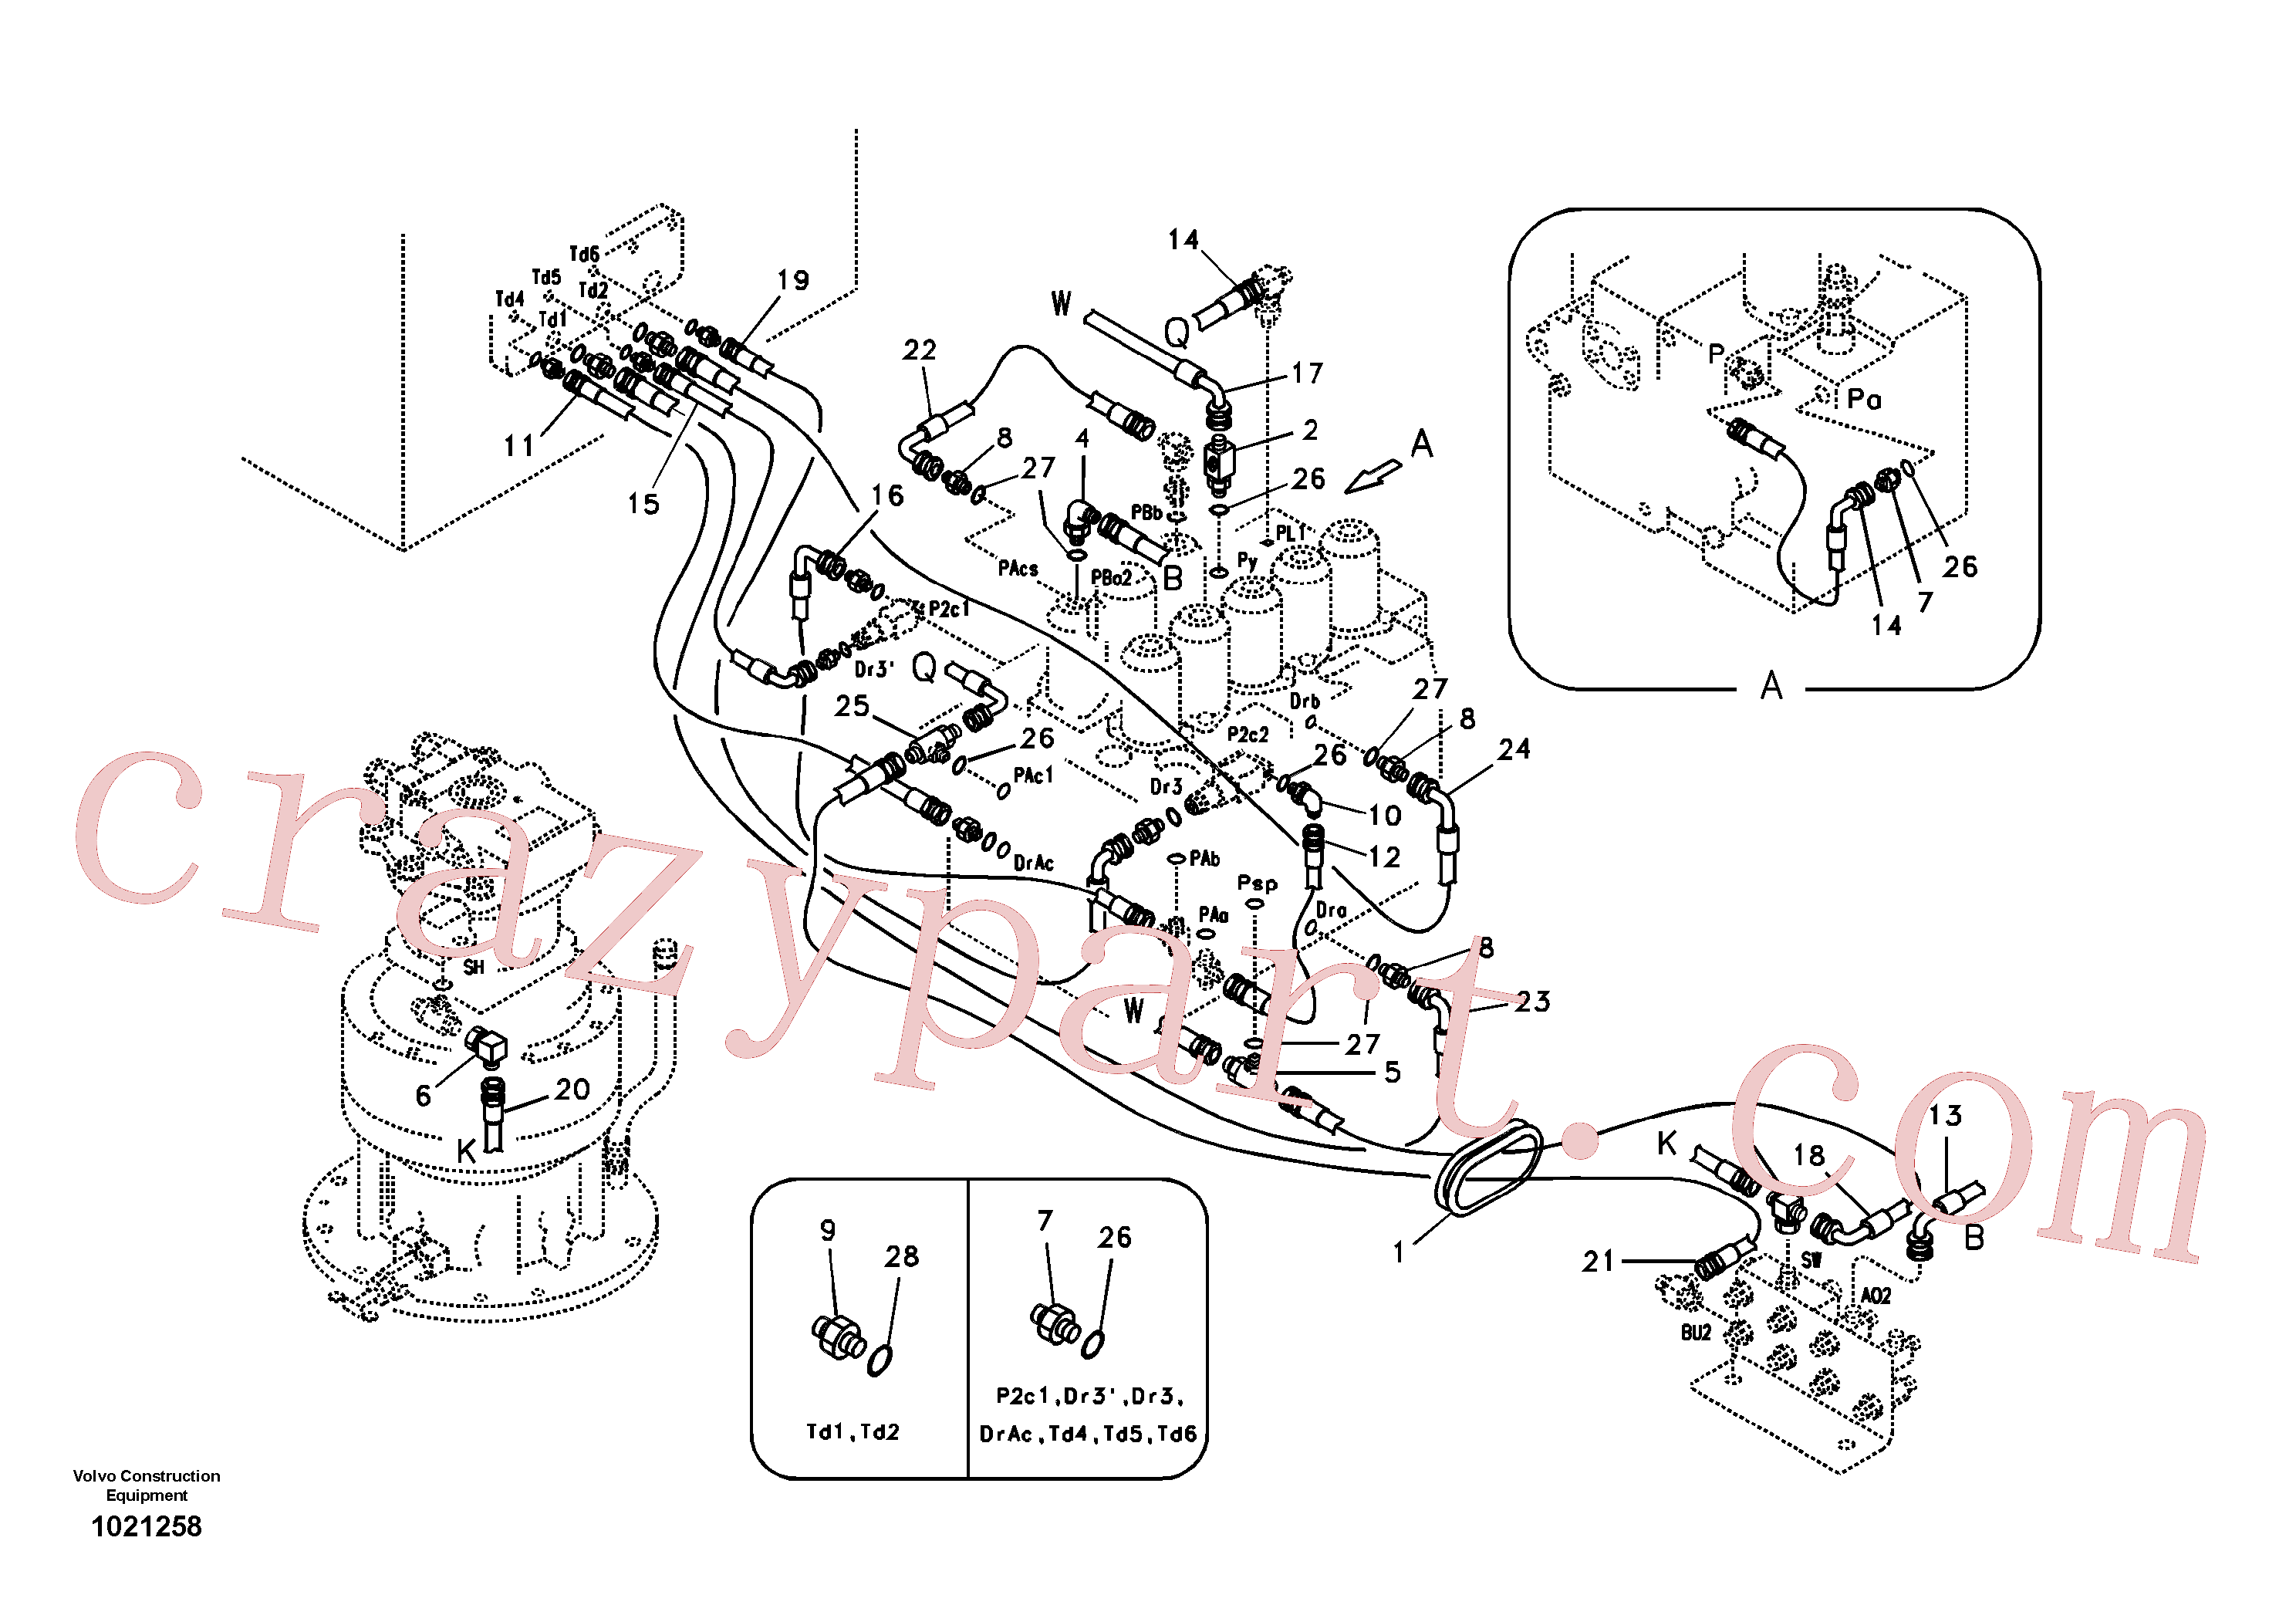 SA9451-03212 for Volvo Servo system, control valve piping.(1021258 assembly)